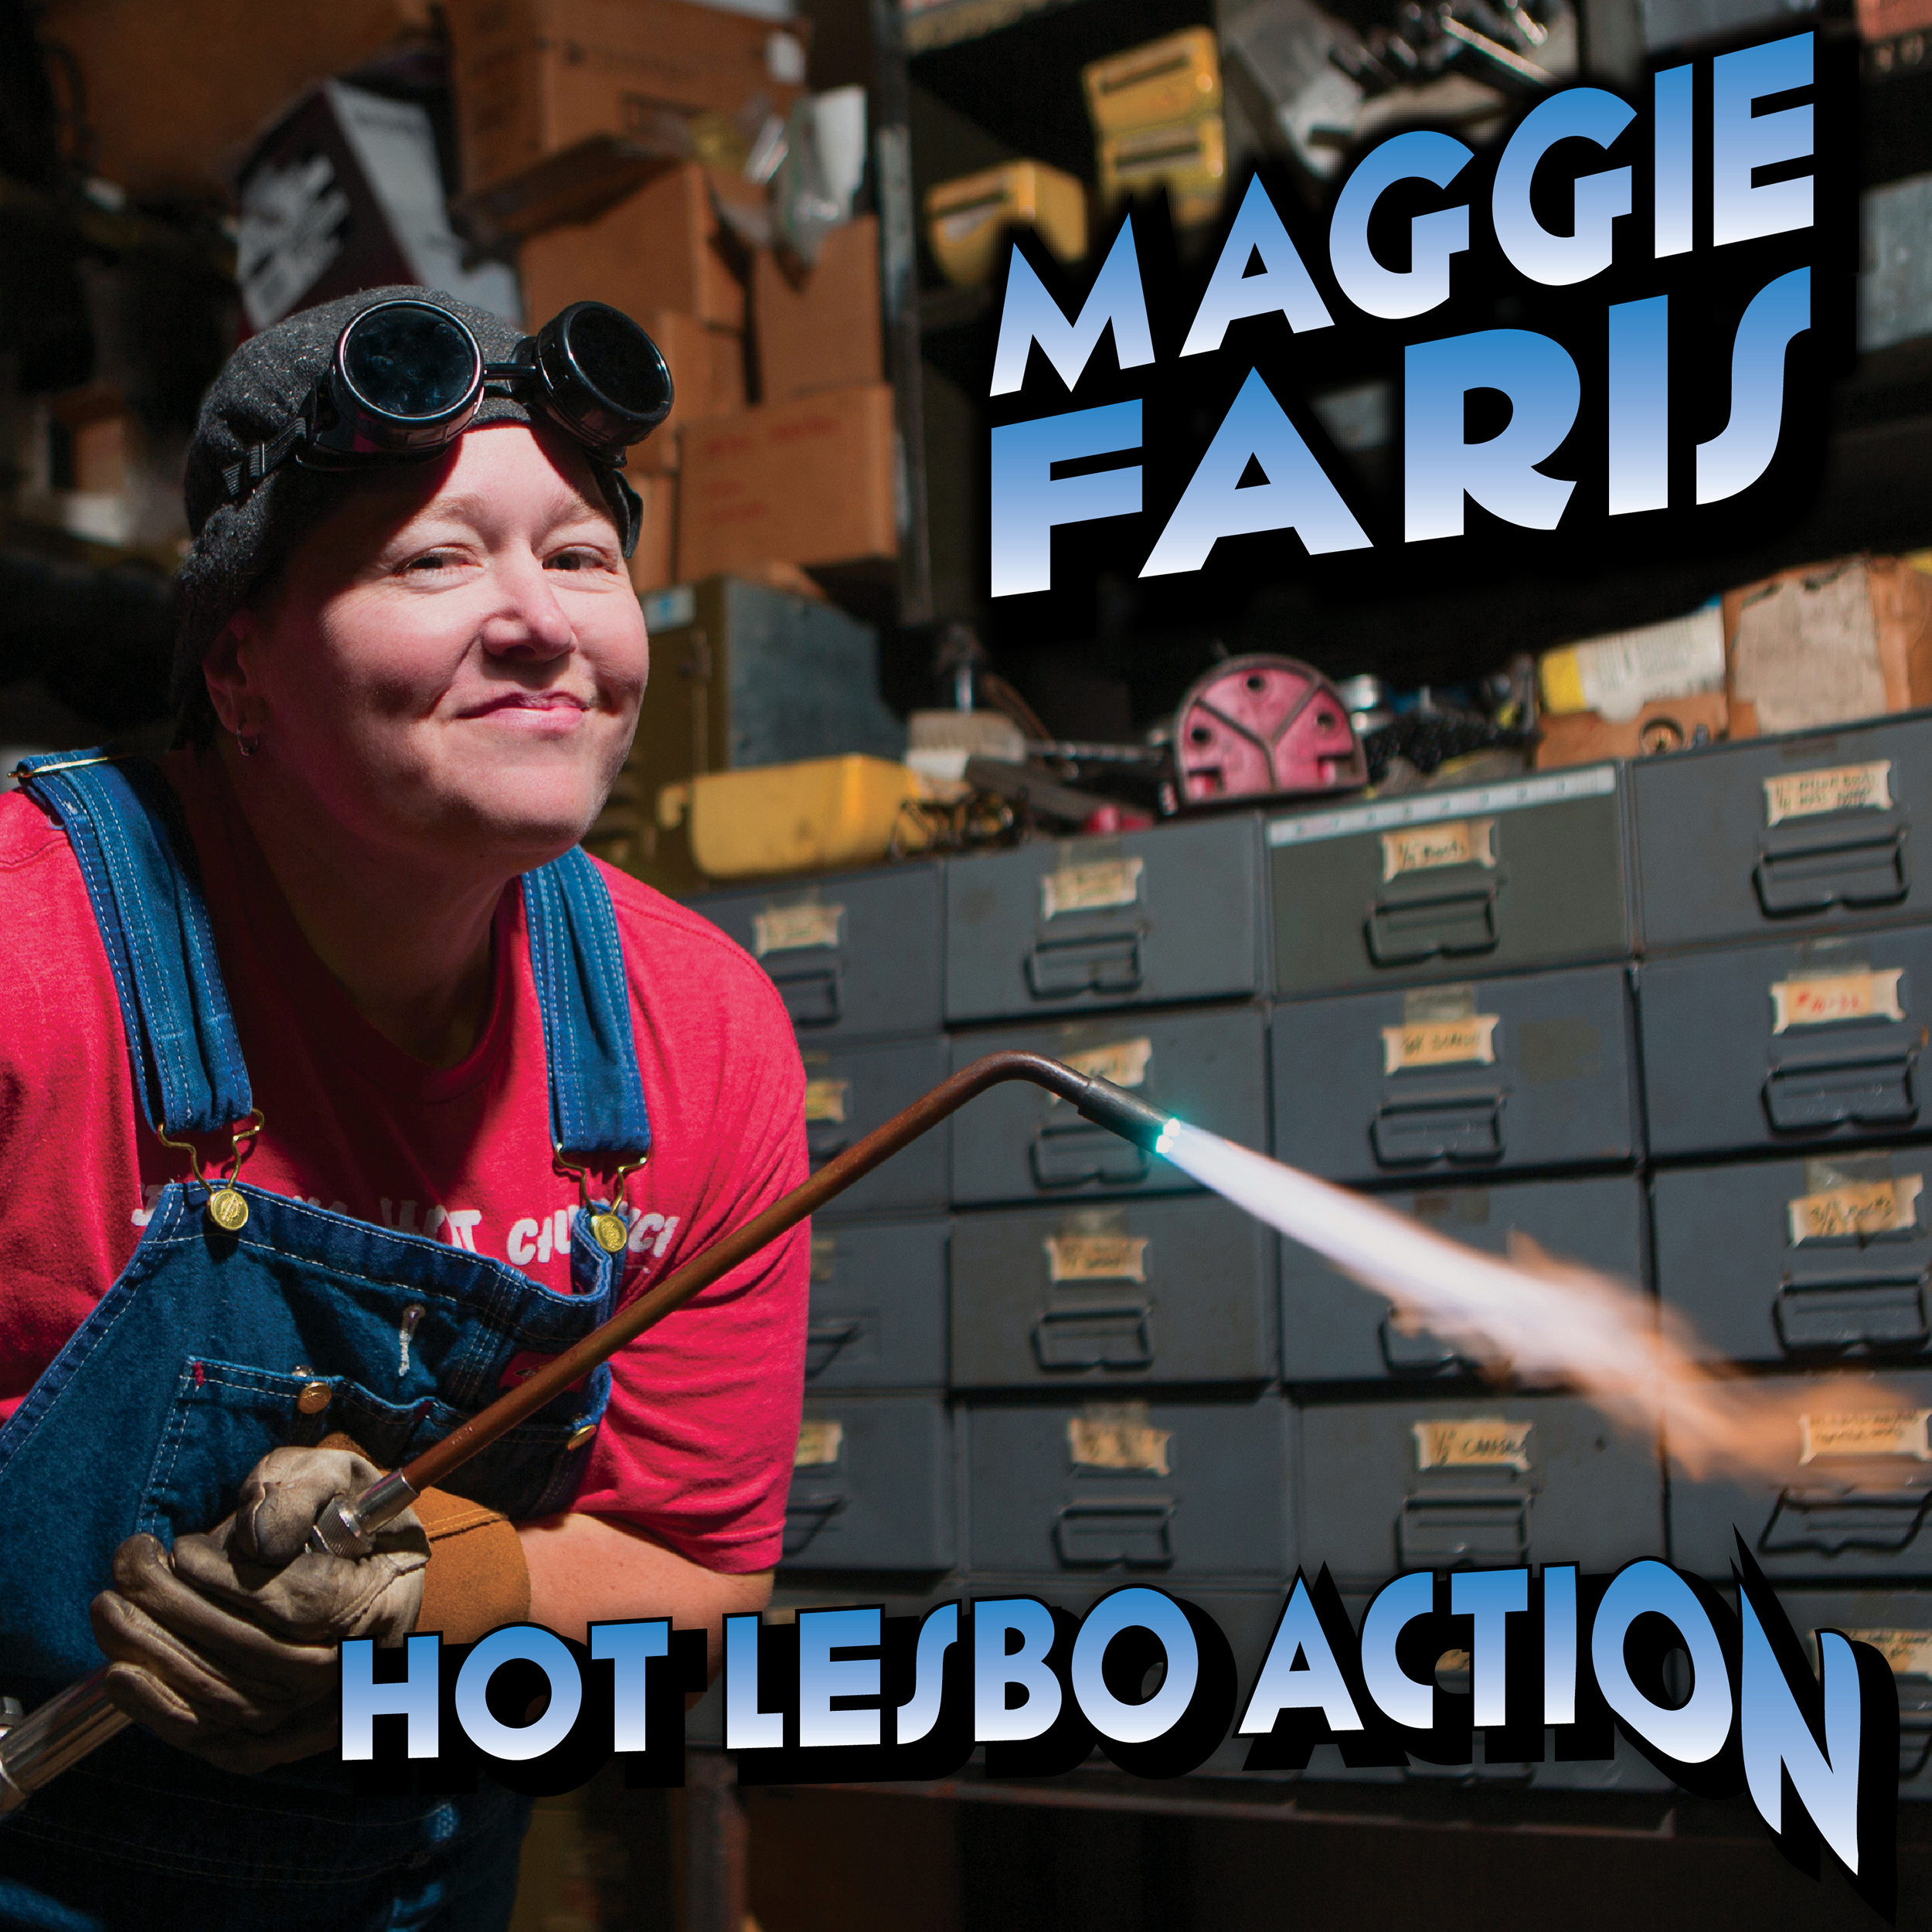 Comedy News: First Beyonce, then Maggie Faris. Hot Lesbo Action Out Today!